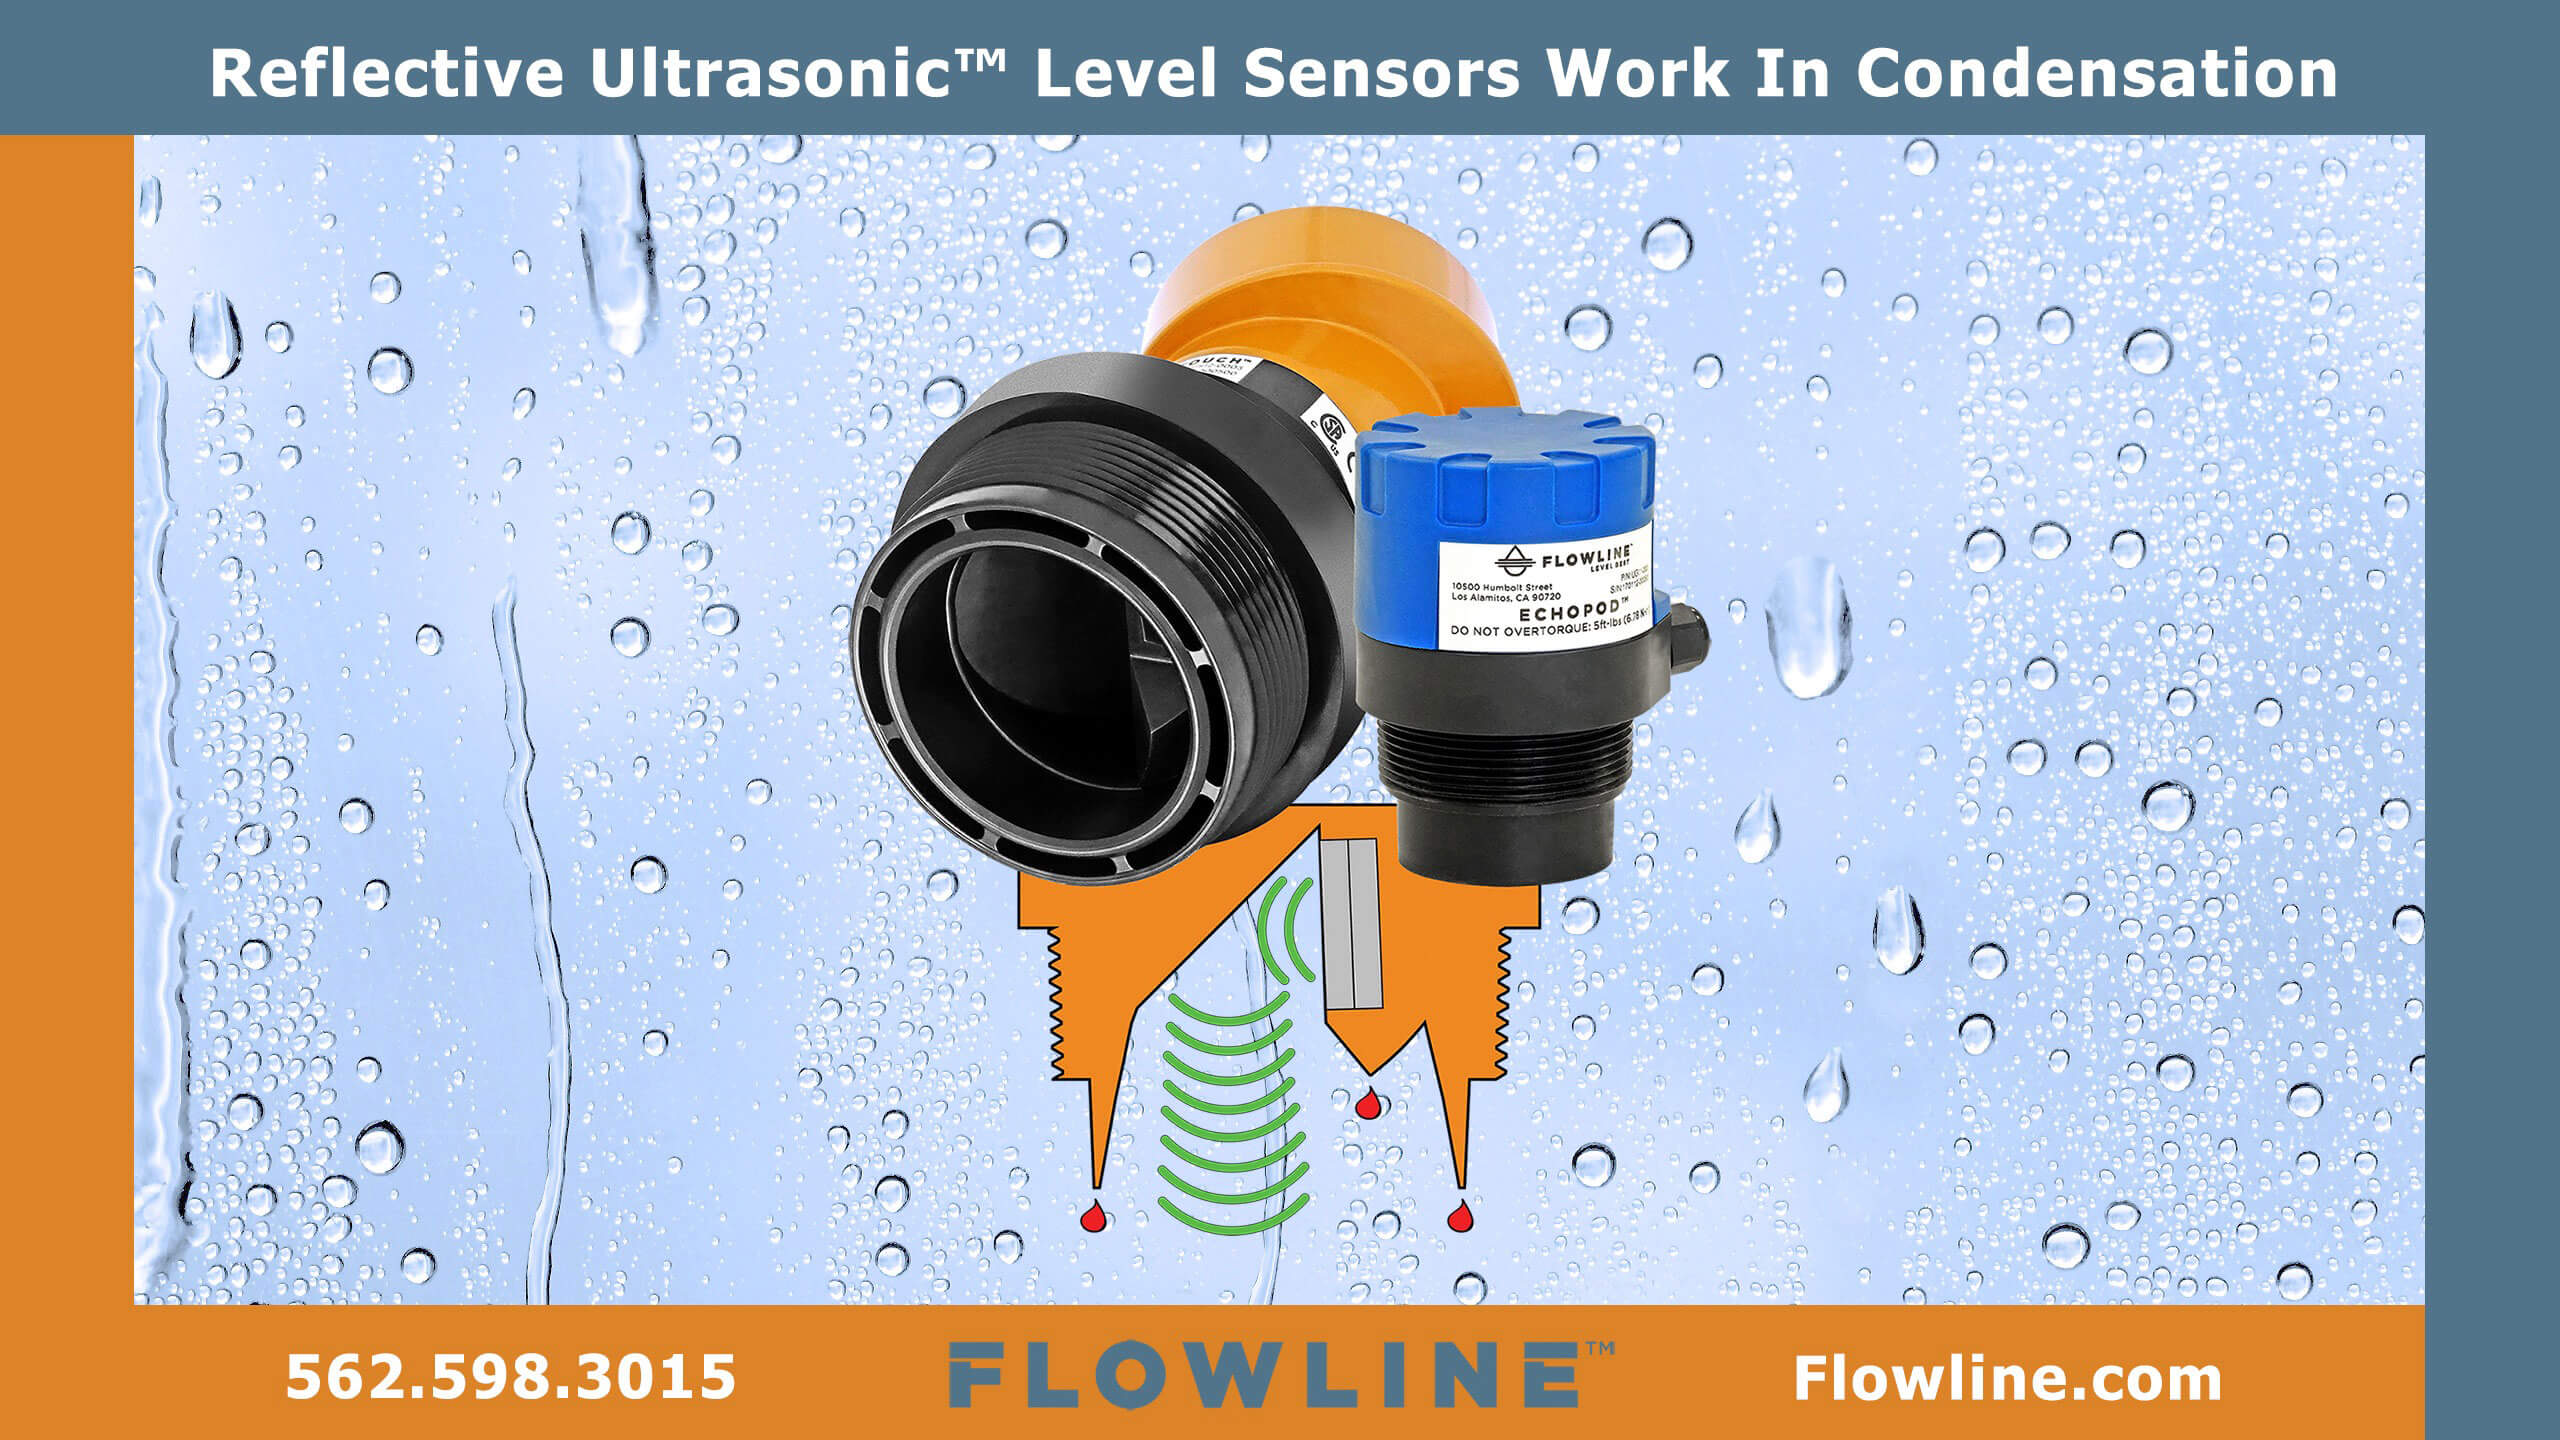 Reflective-Ultrasonic-Sensors-Provide-Reliable-Level-Measurement-In-Condensing-Environments Flowline Inc.